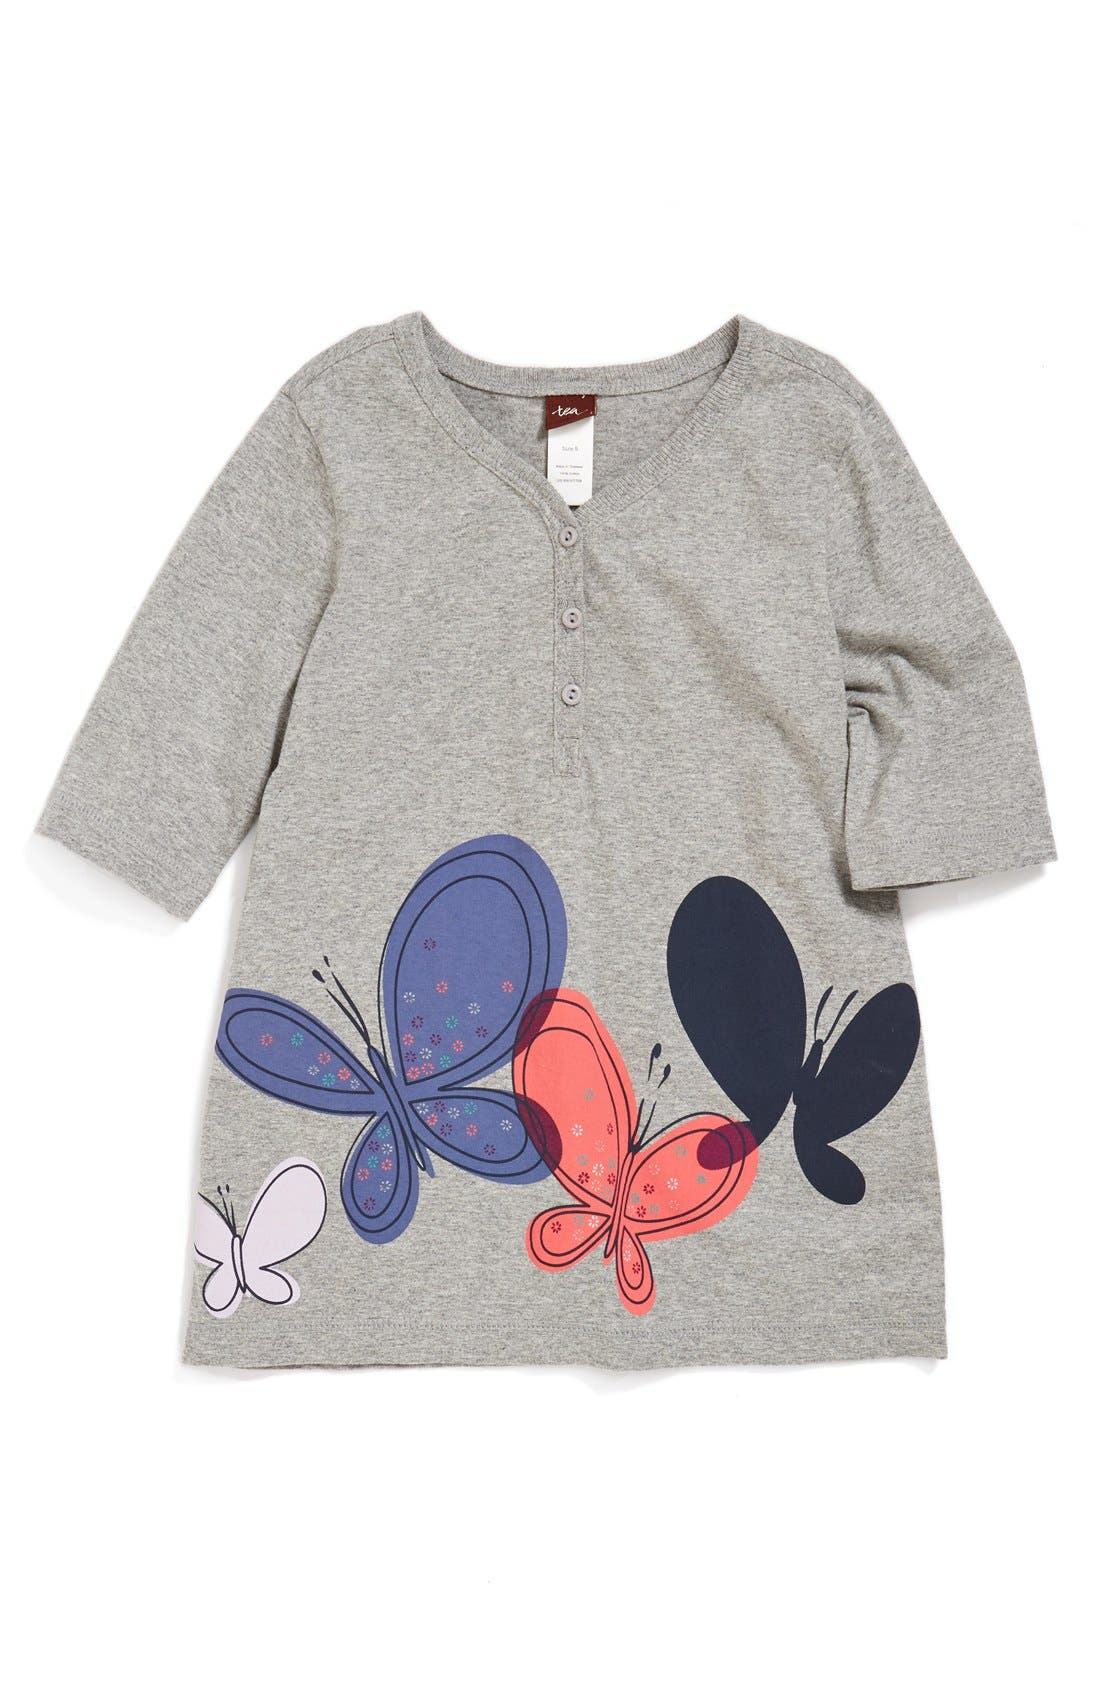 Main Image - Tea Collection 'Schmetterling' Henley Tee (Toddler Girls, Little Girls & Big Girls)